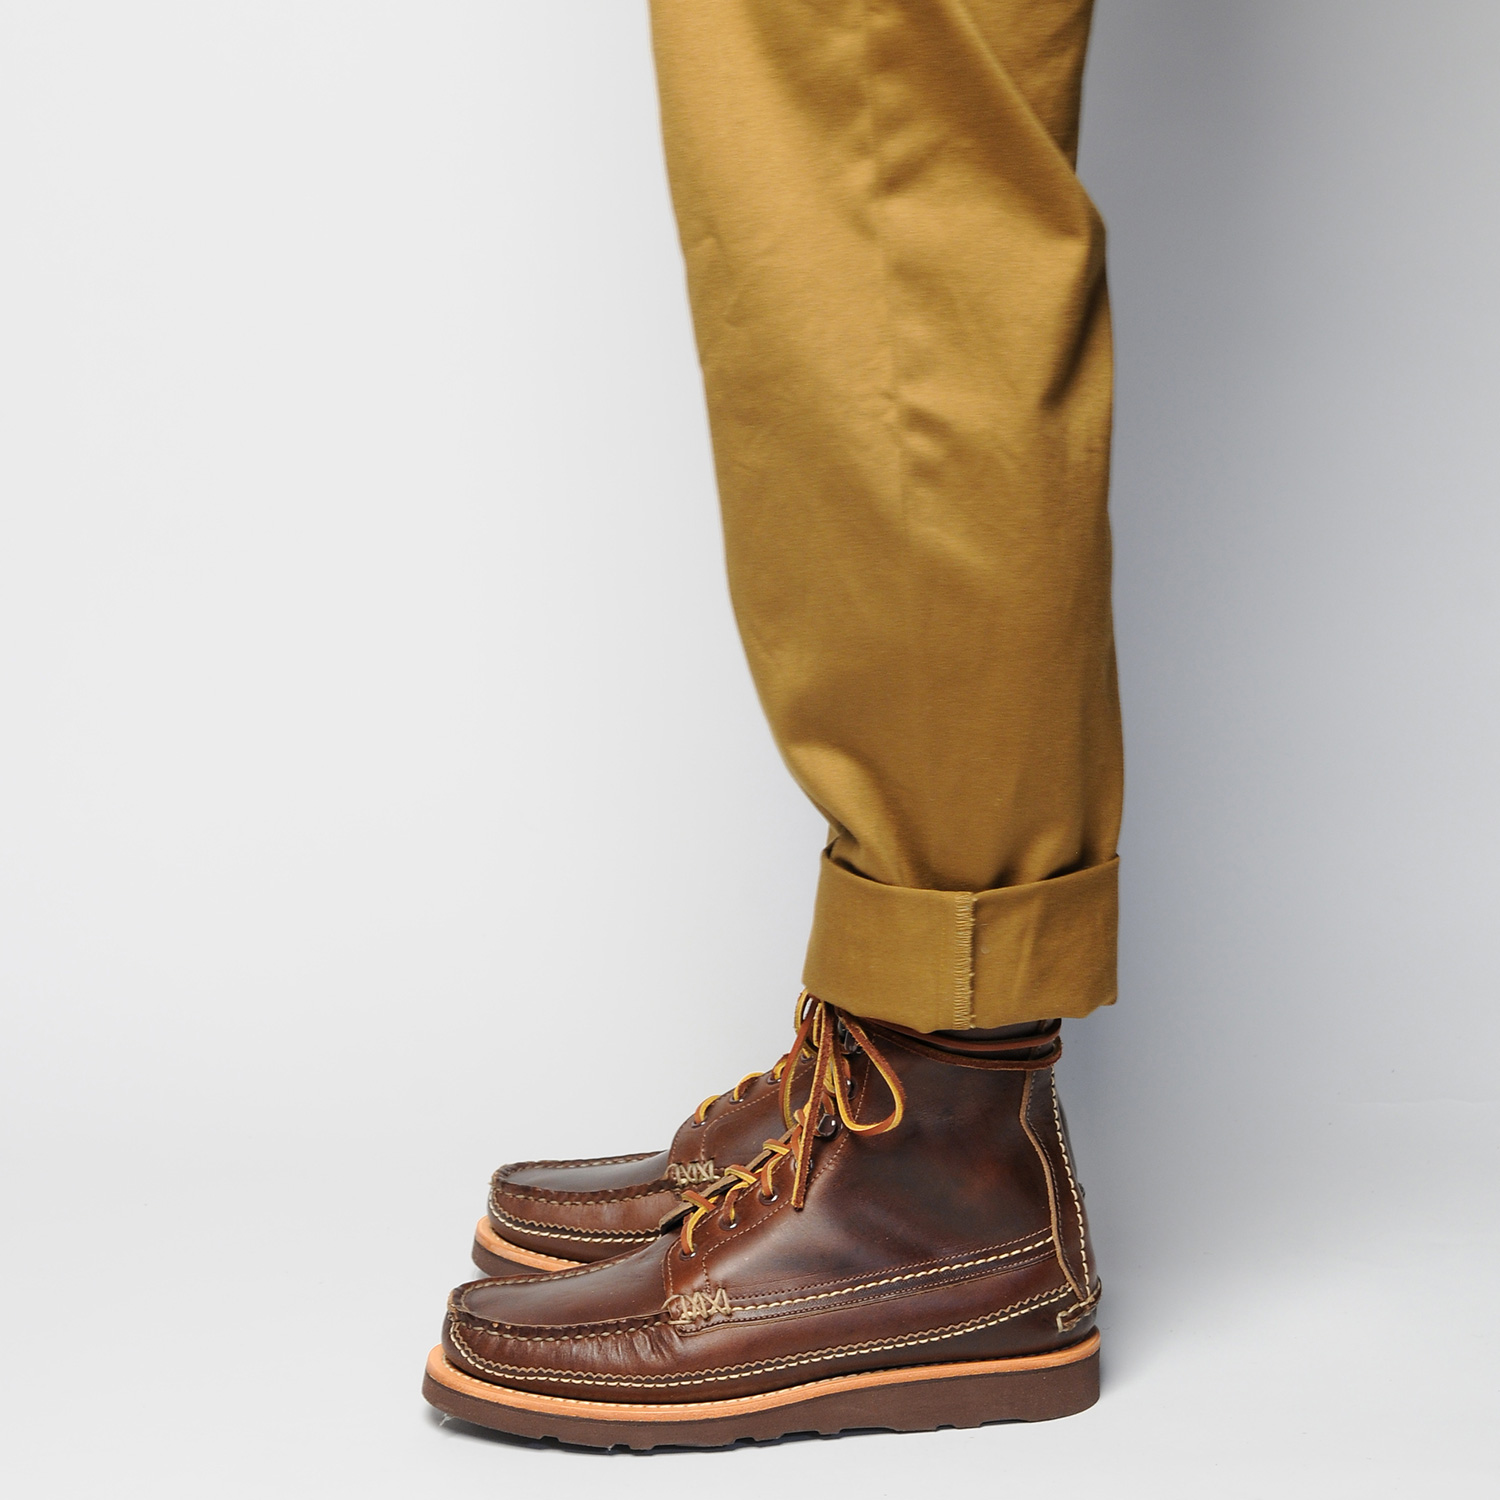 MAINE-GUIDE-DB-BOOTS,-G-BROWN,-WEAR-SIDE.jpg